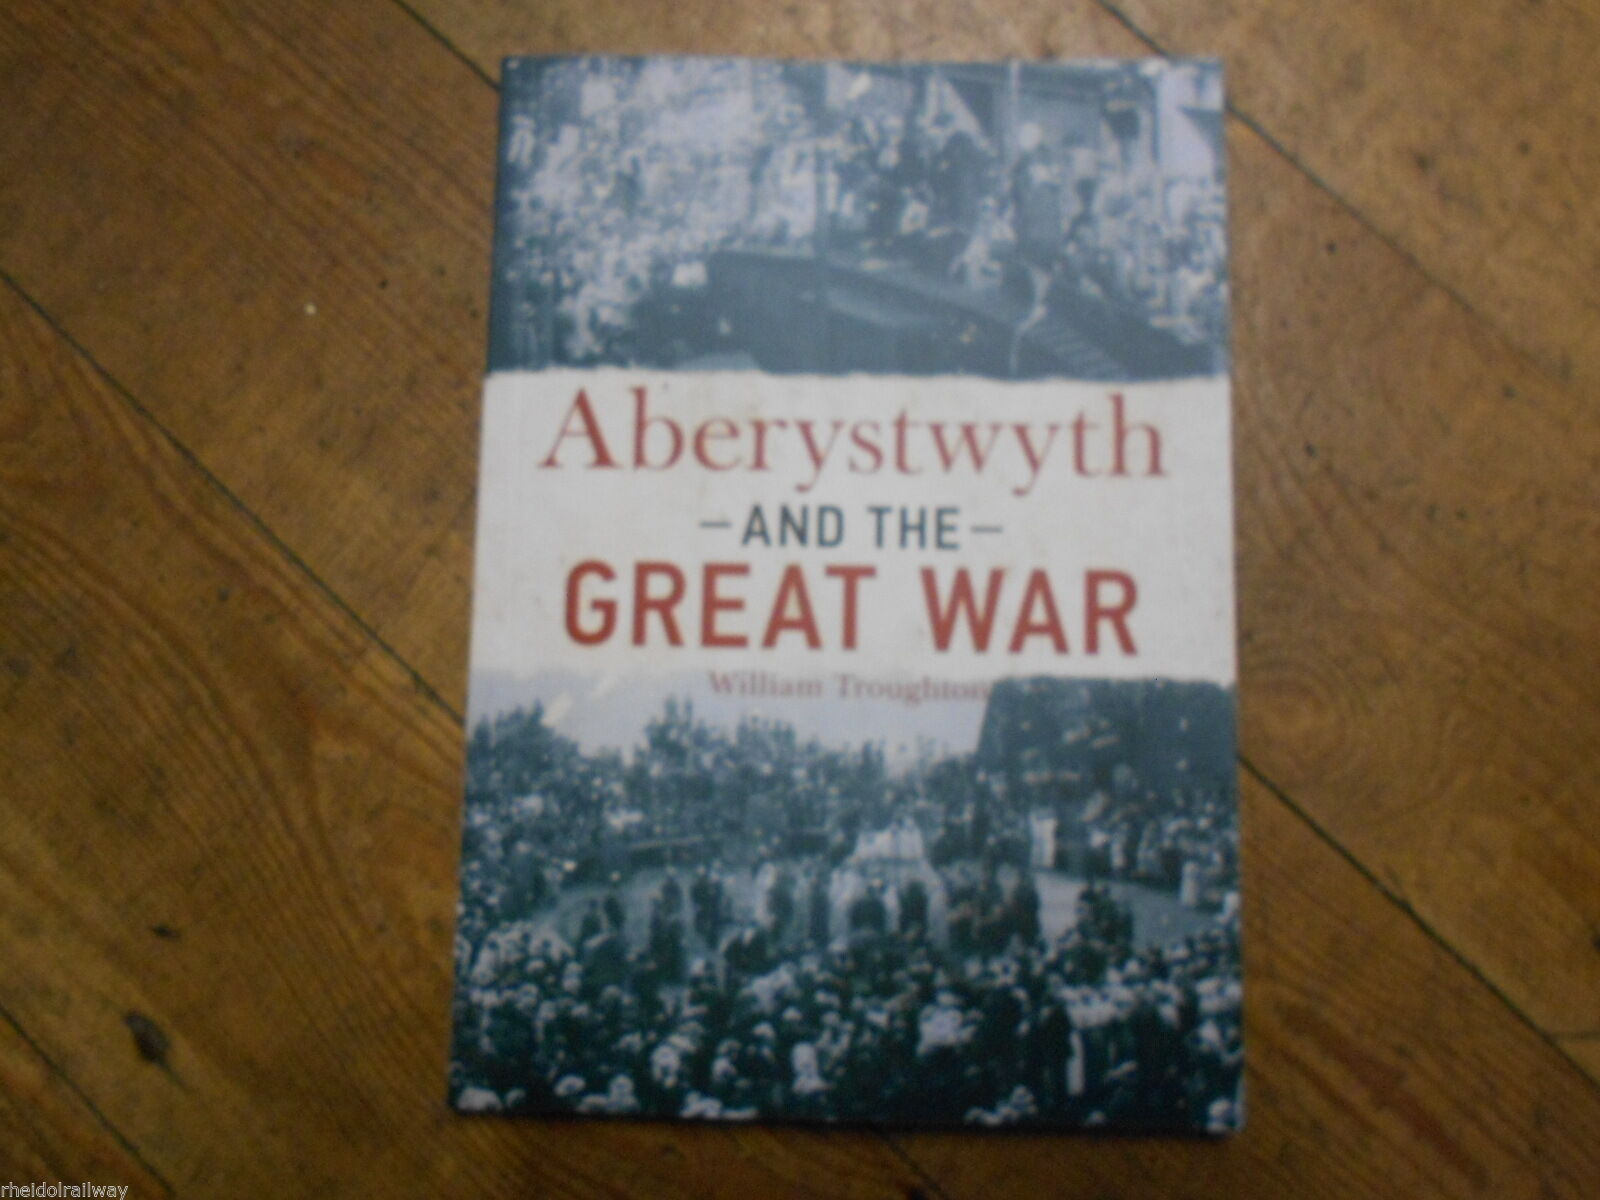 Aberystwyth And The Great War by William Troughton WW1 First world war Wales Book - The Vale of Rheidol Railway